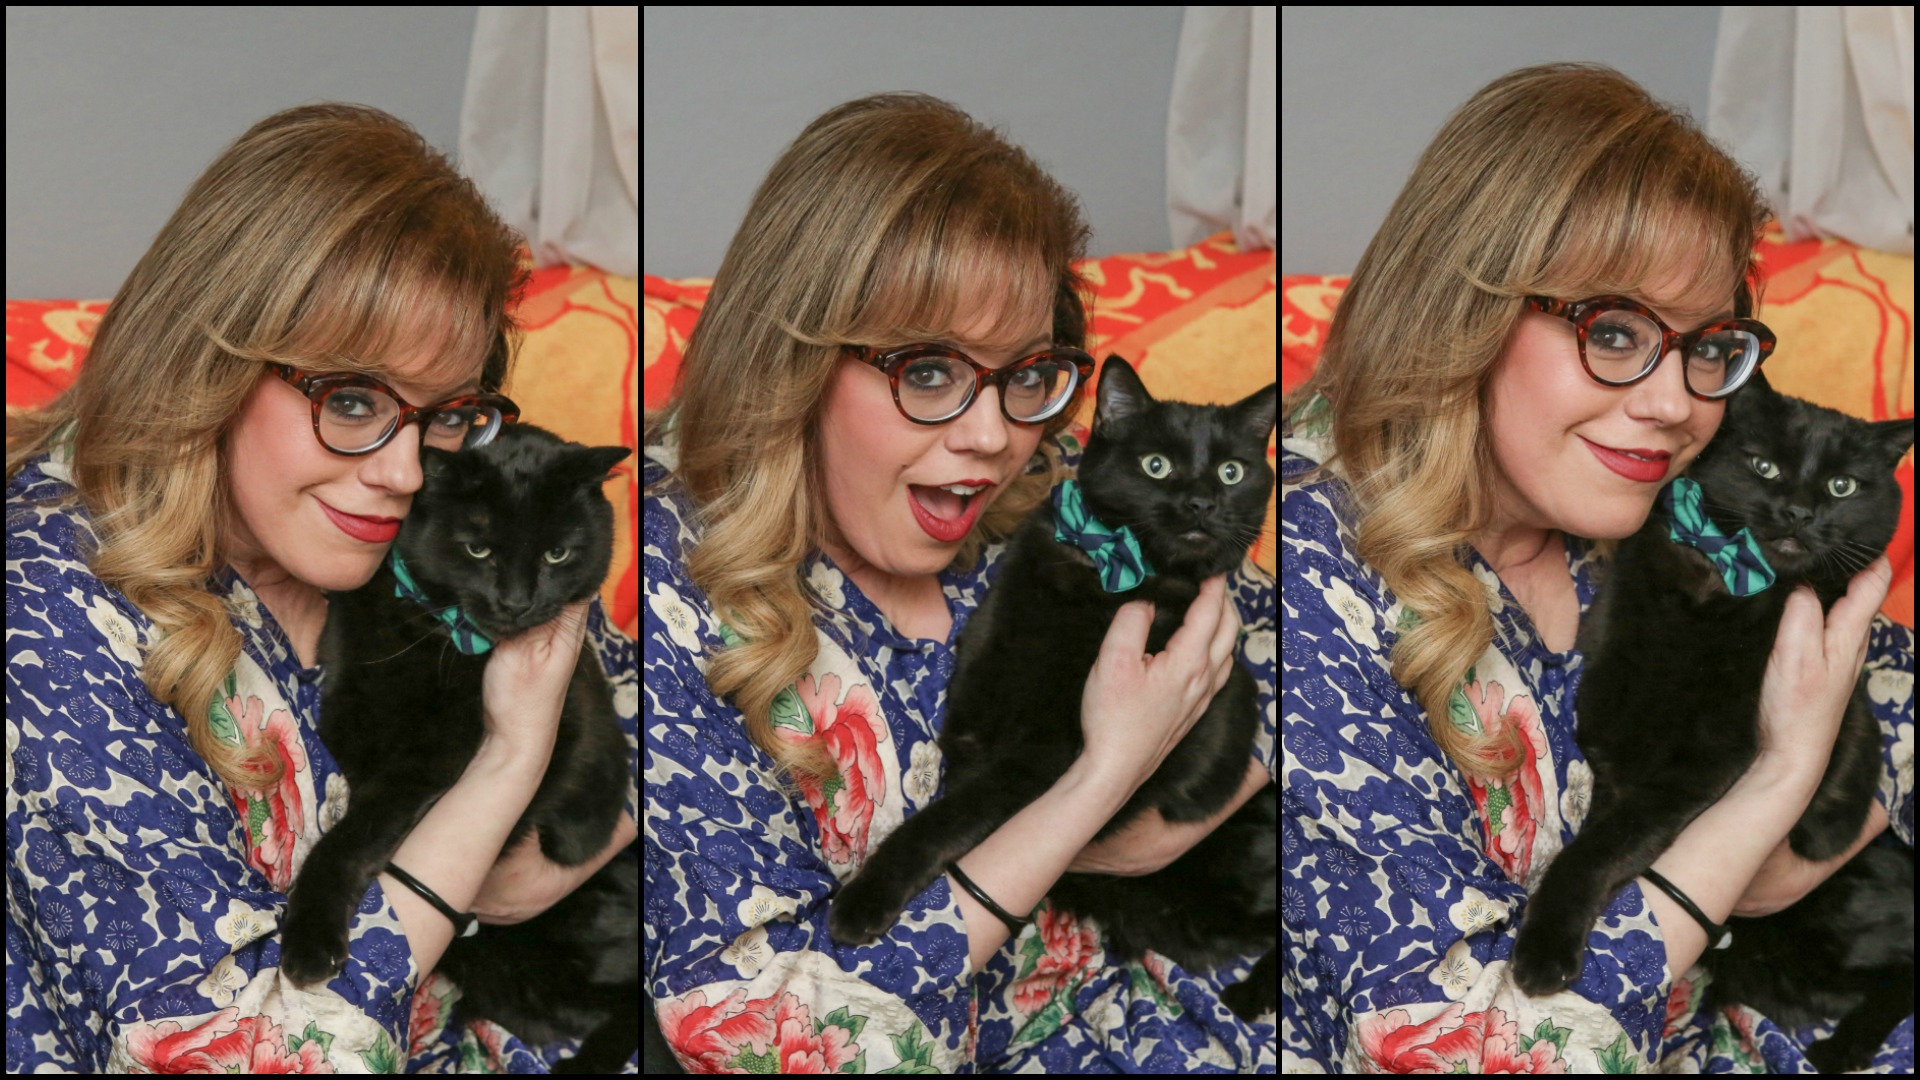 Our favorite cat lady.